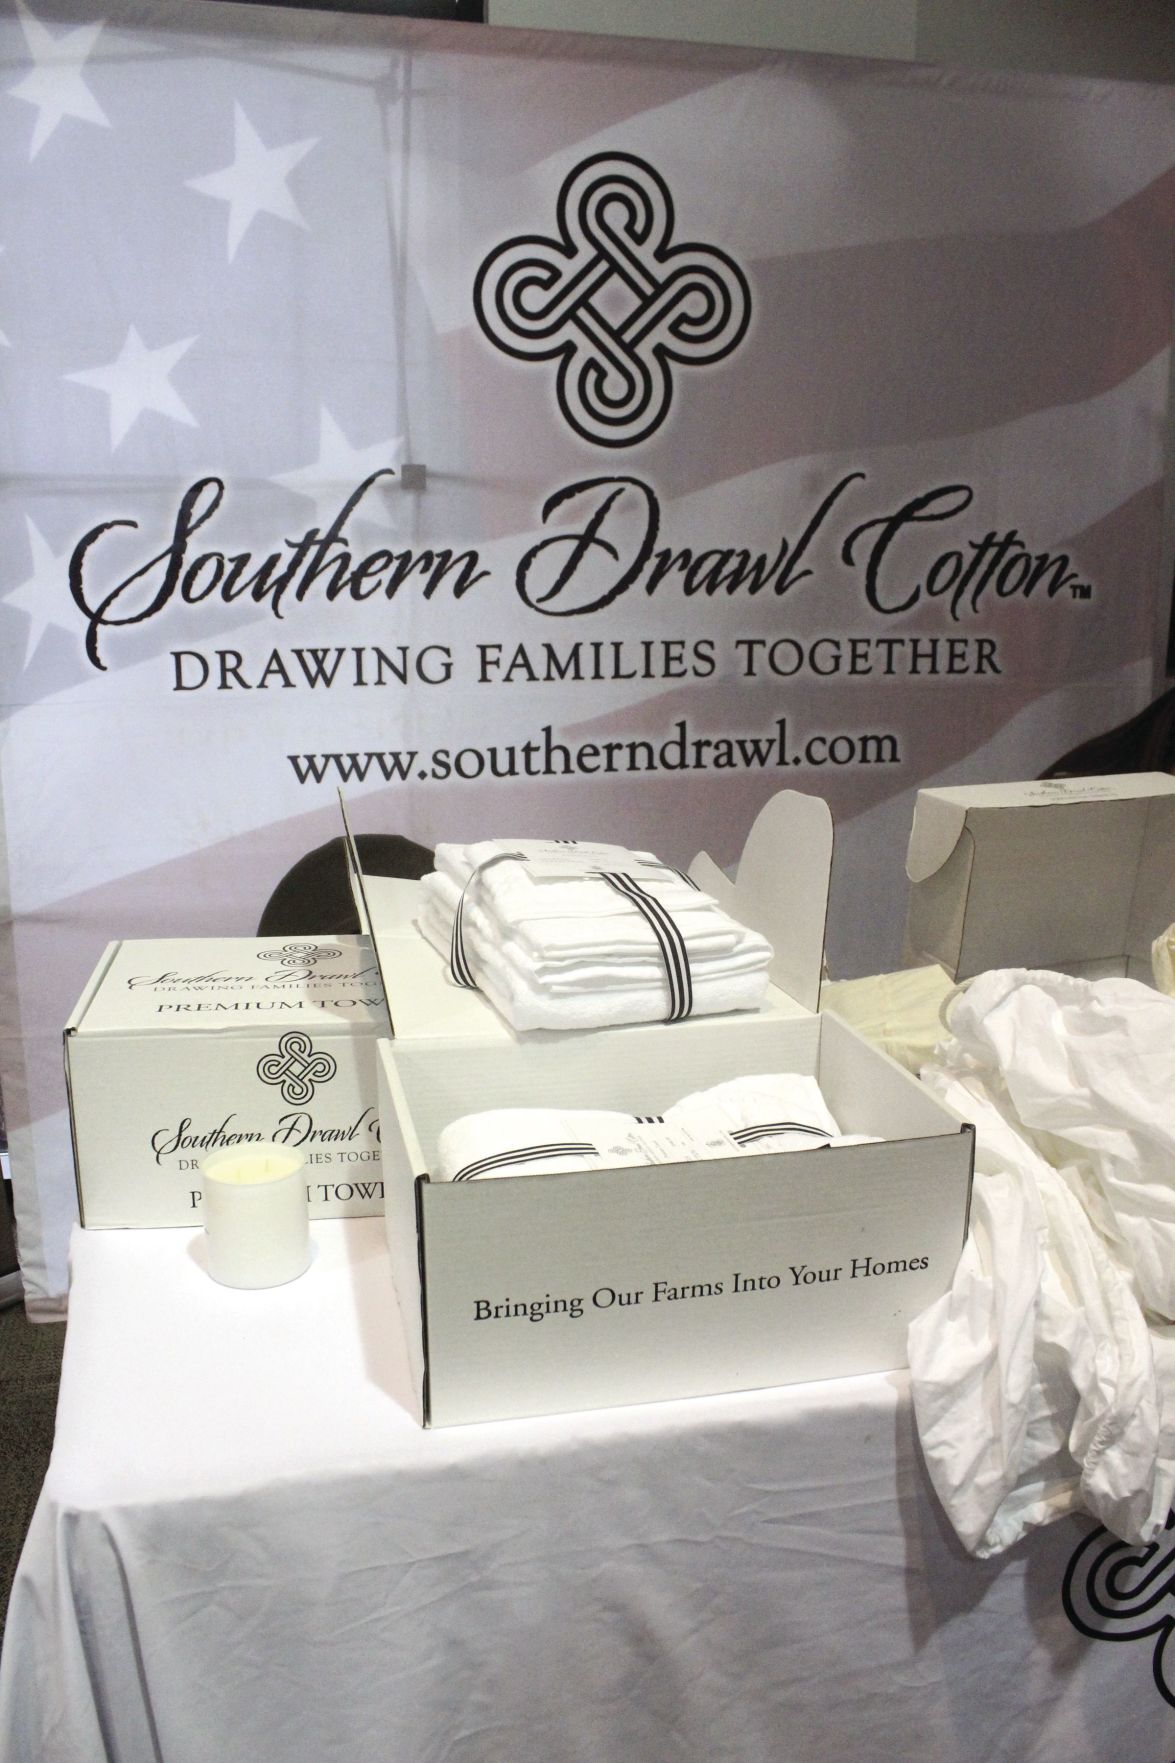 Southern Drawl, a company which makes bedsheets and towels out of cotton grown in Georgia, set up a booth at the conference